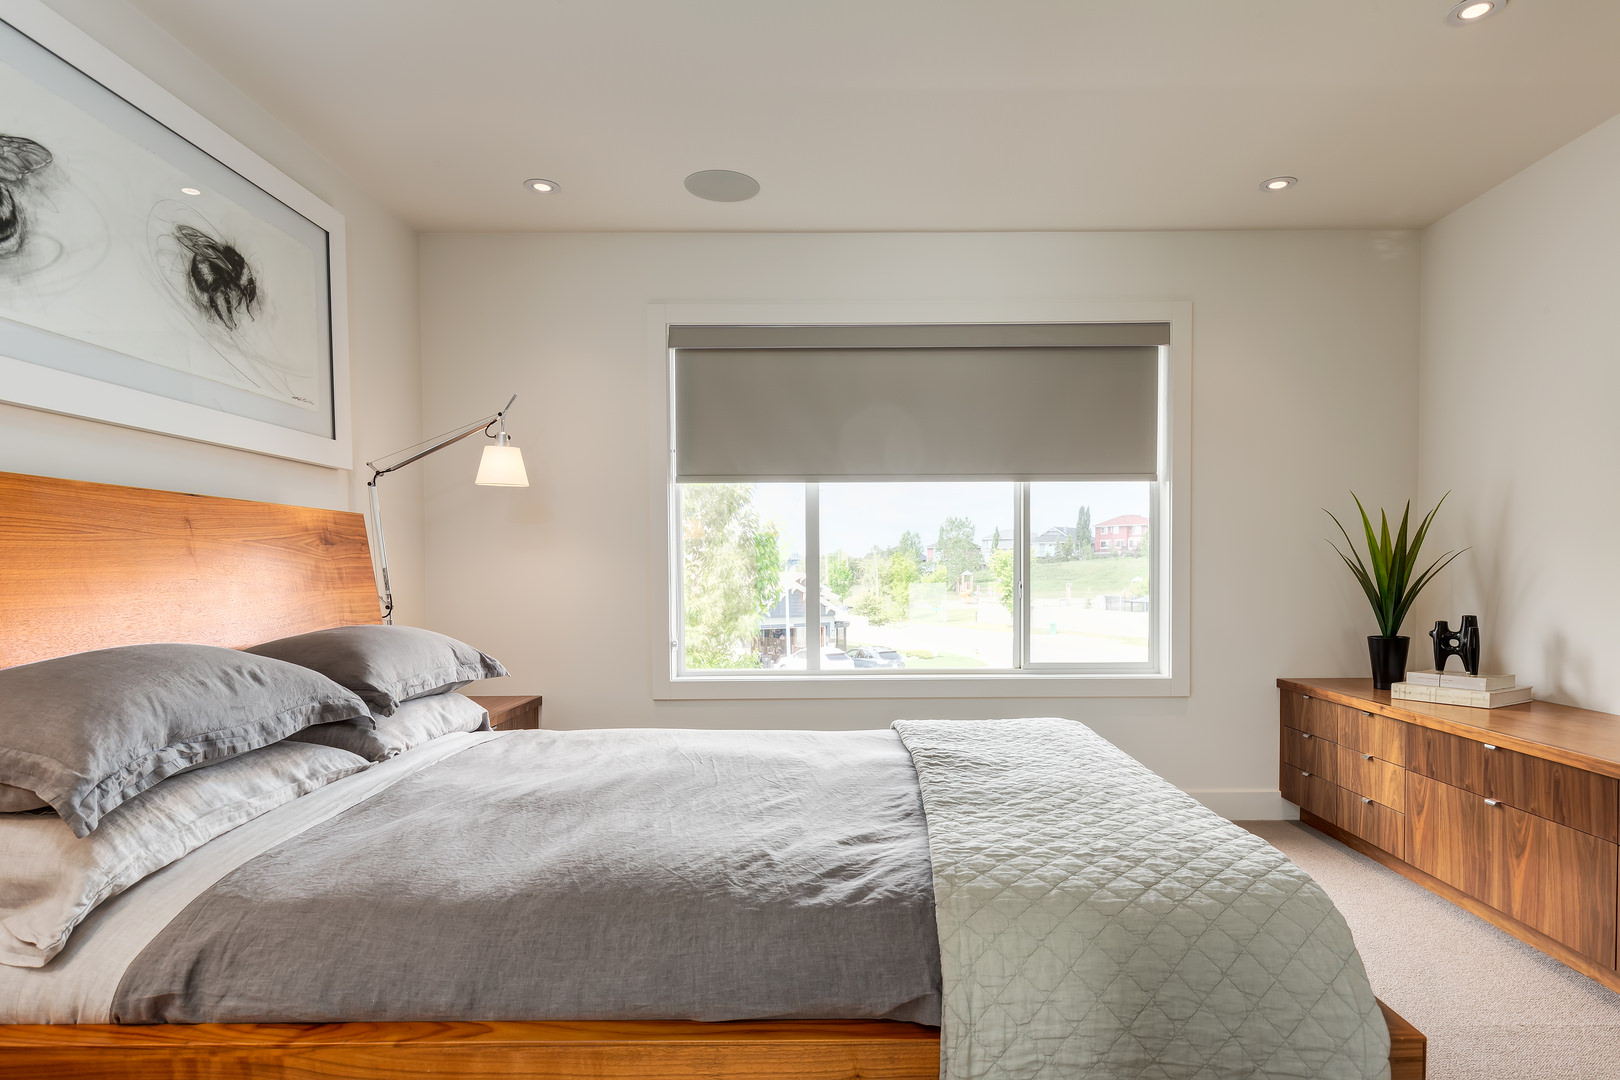 ecessed pot lights add additional lighting to the bedroom, along with natural sunlight.